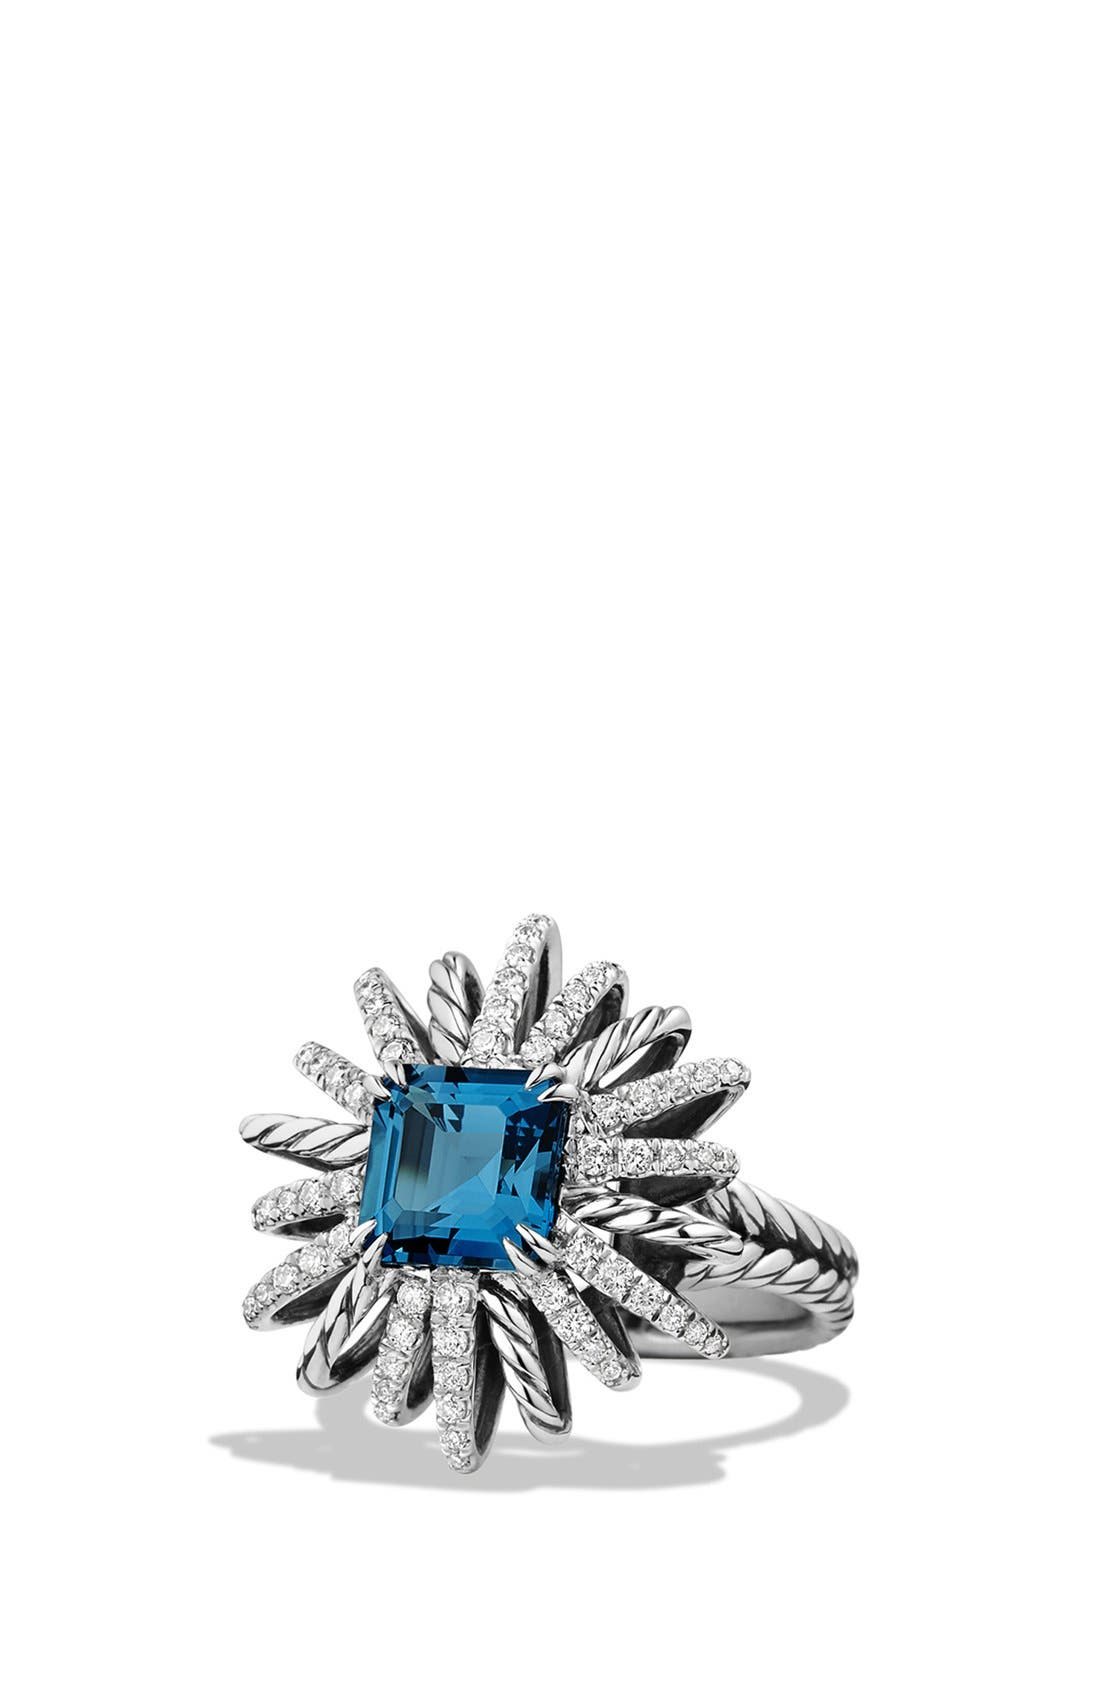 'Starburst' Ring with Diamonds in Silver,                         Main,                         color, Hampton Blue Topaz